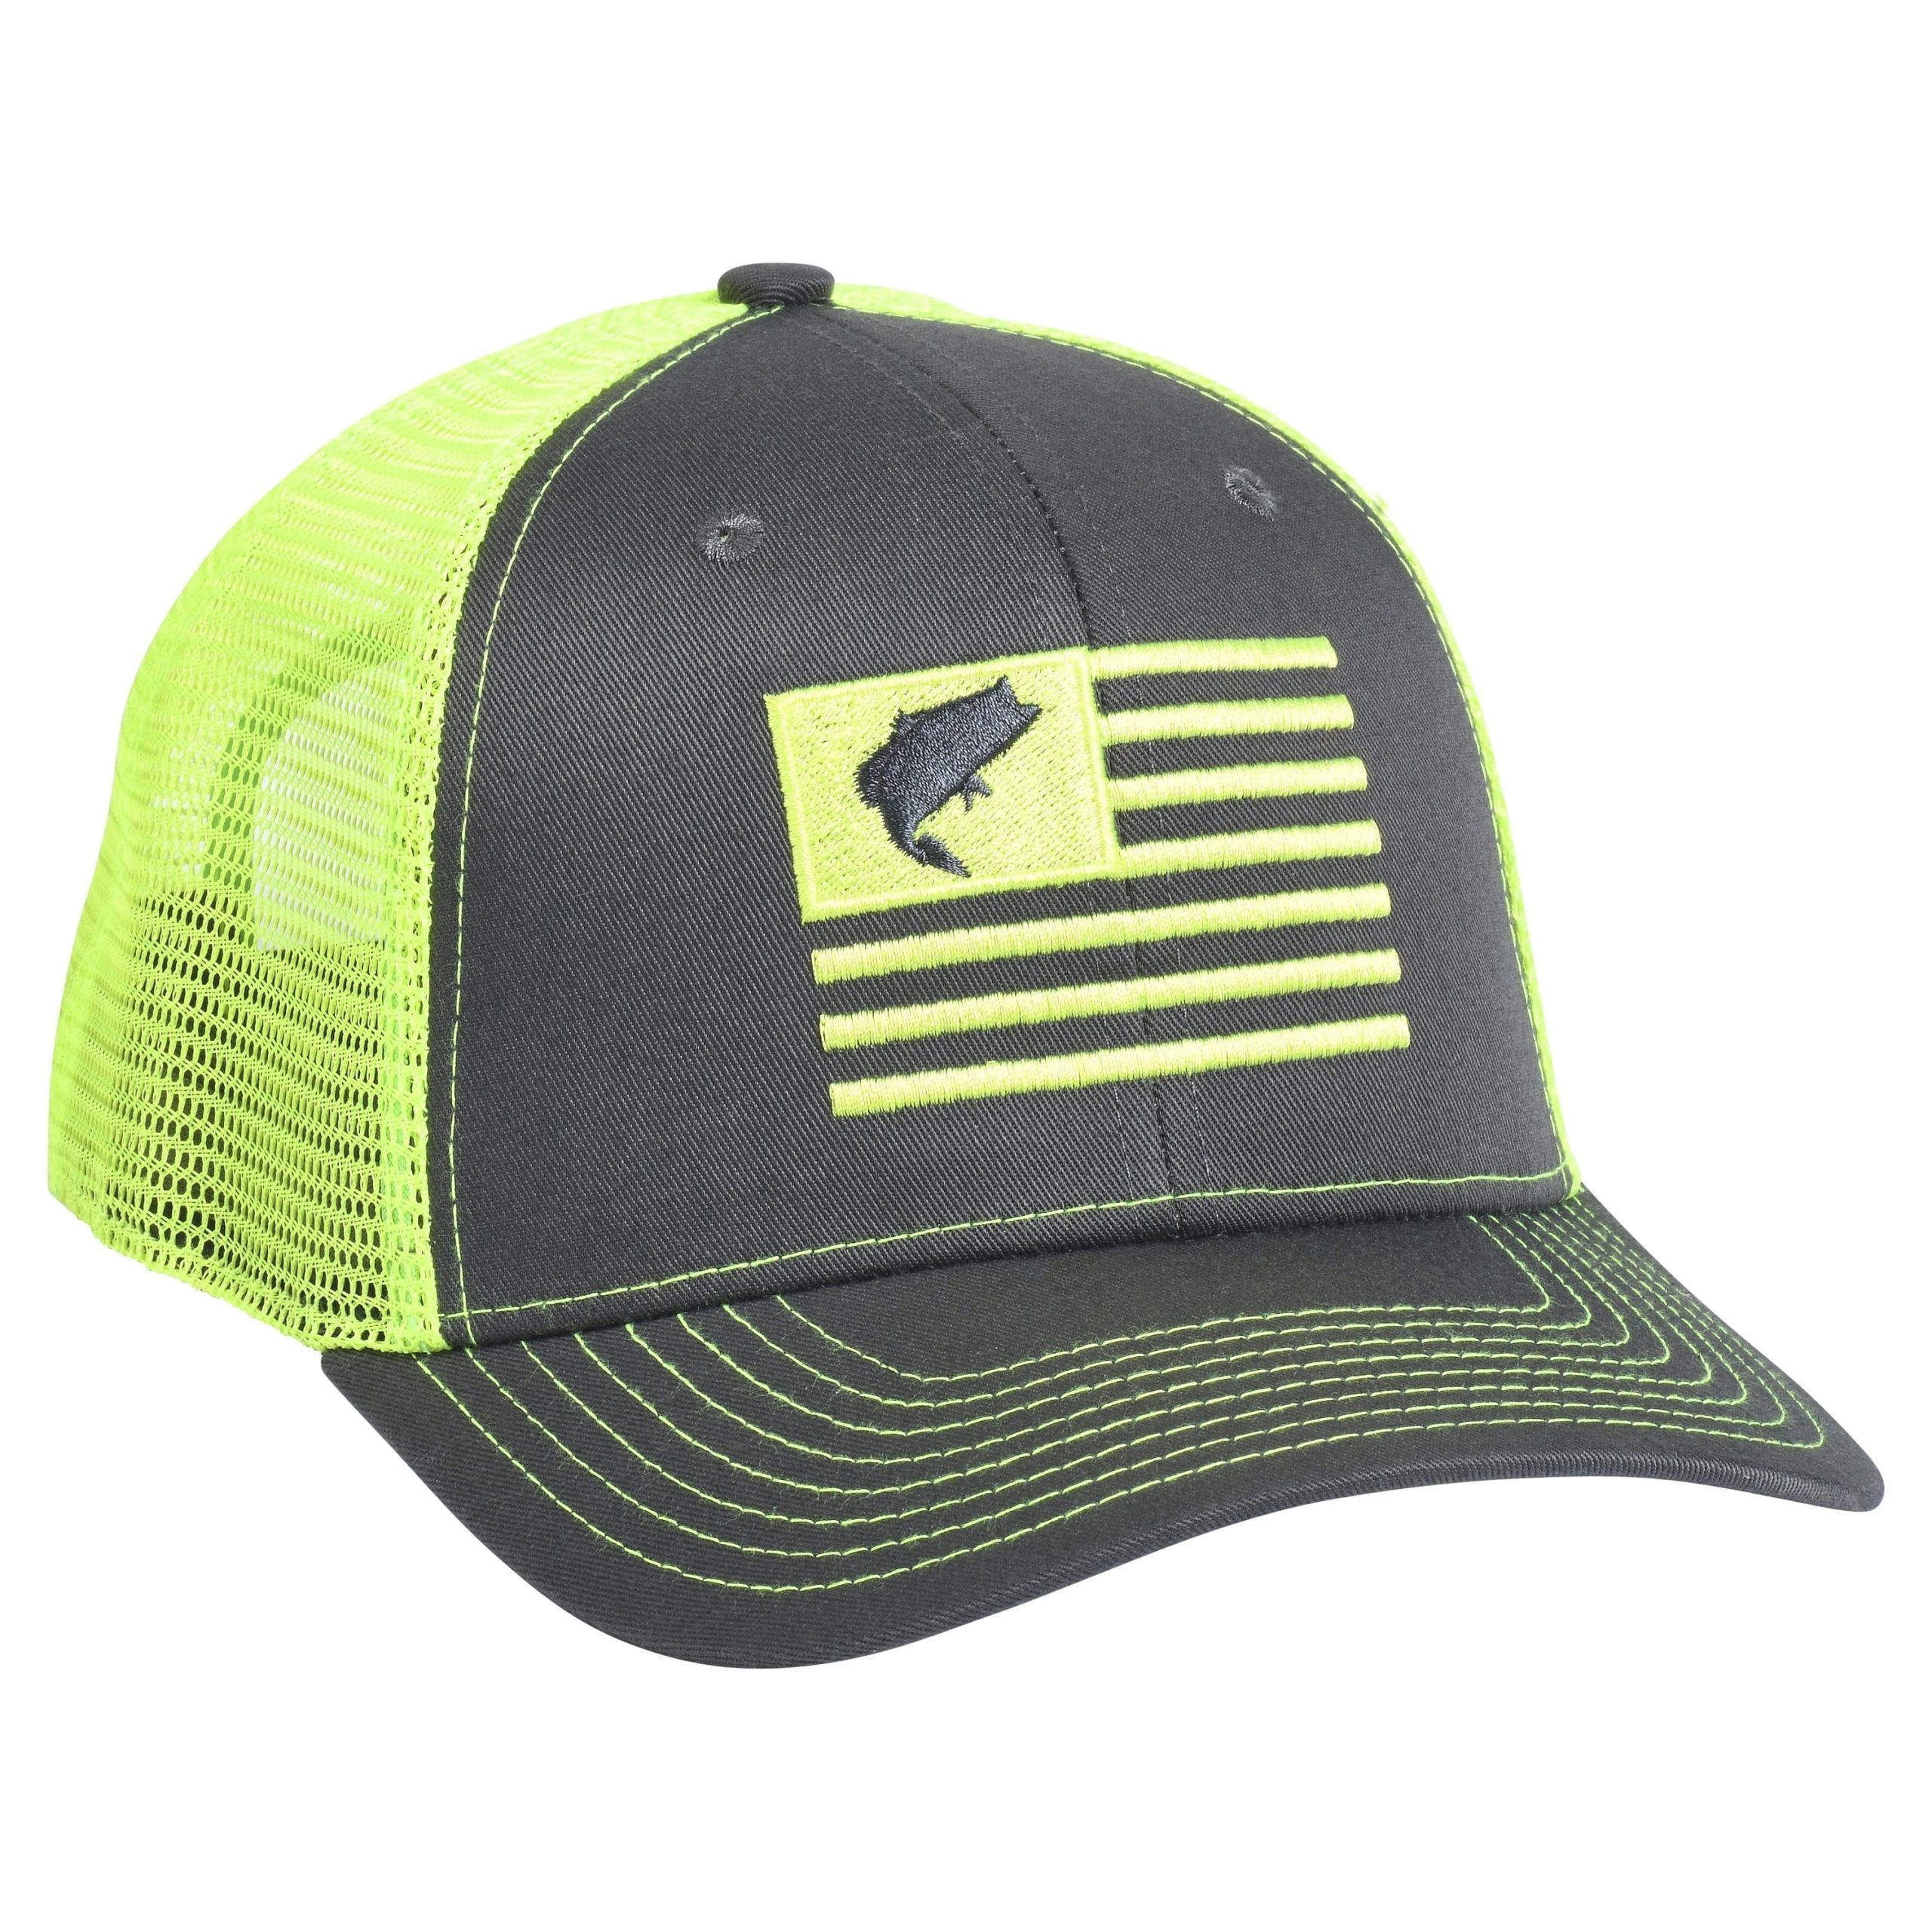 Bass Flag Embroidery Charcoal/Neon Green